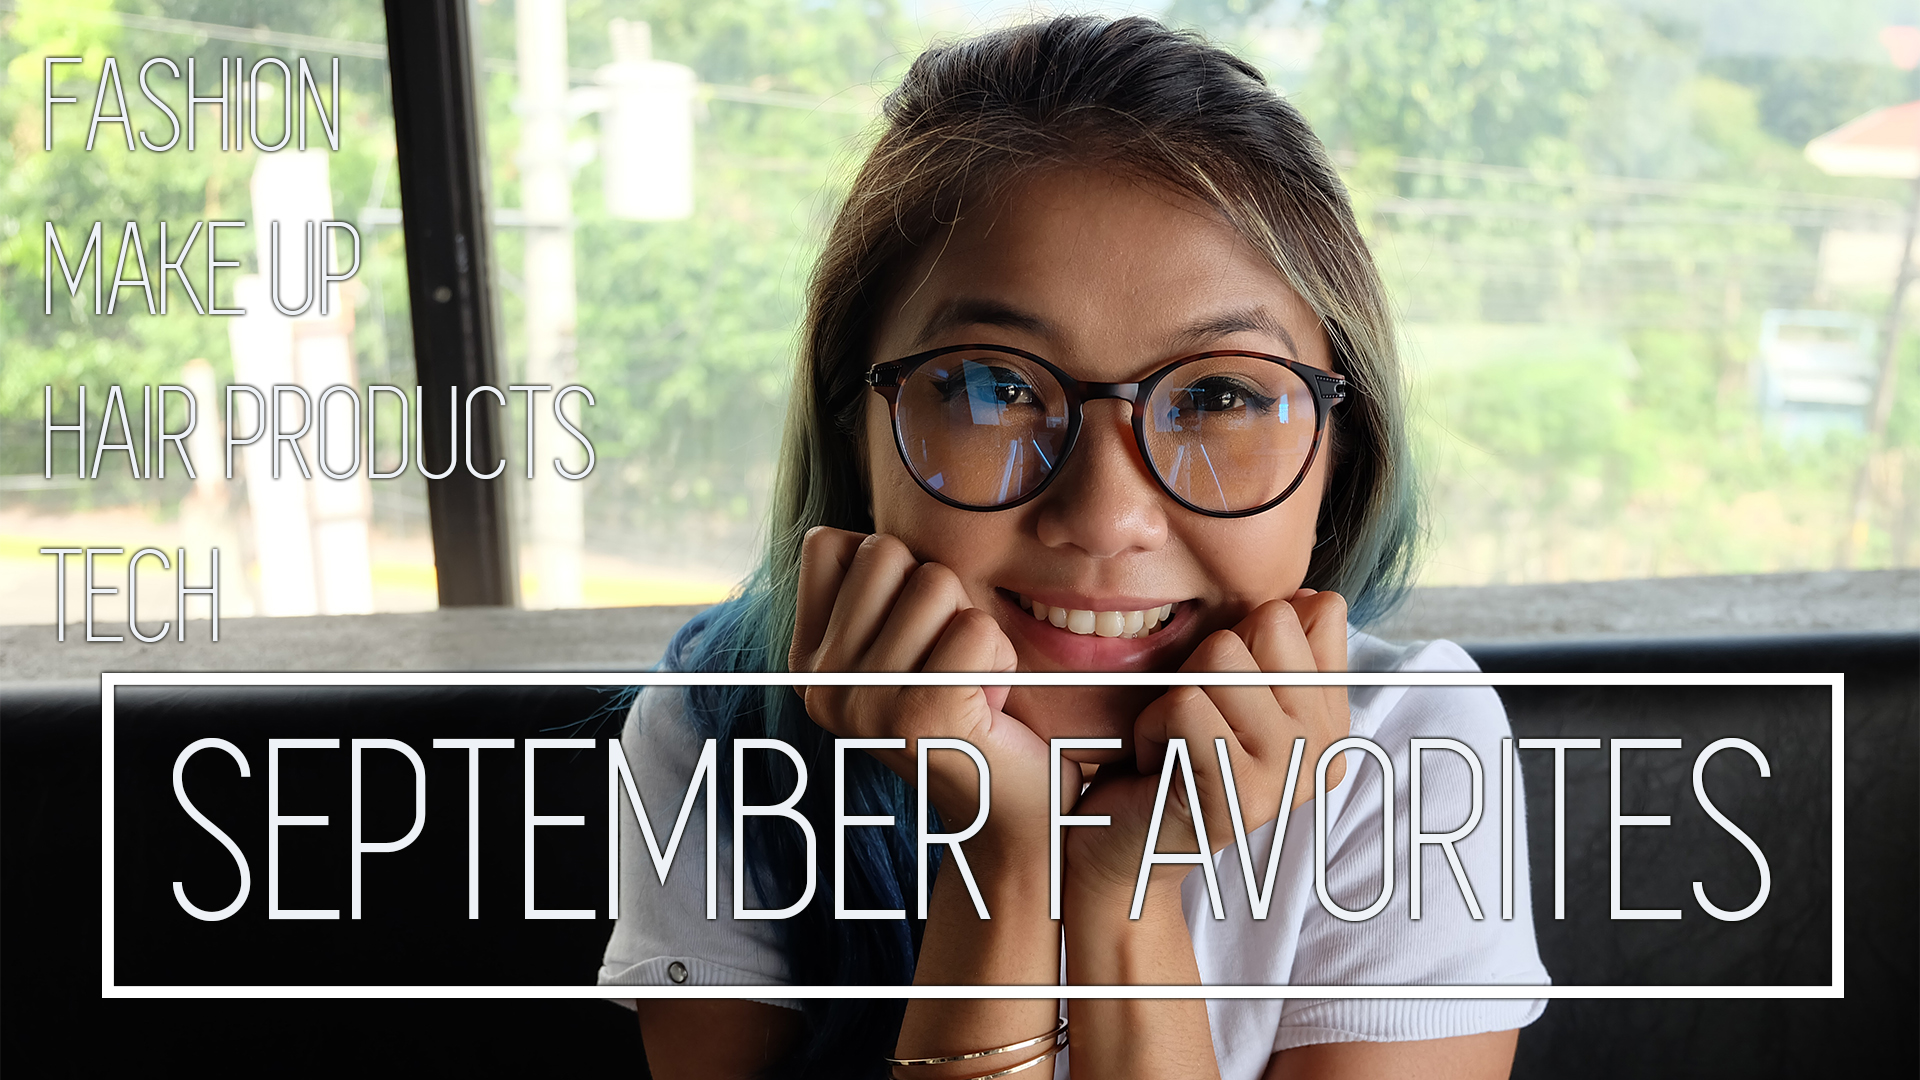 [VLOG] September Favorites